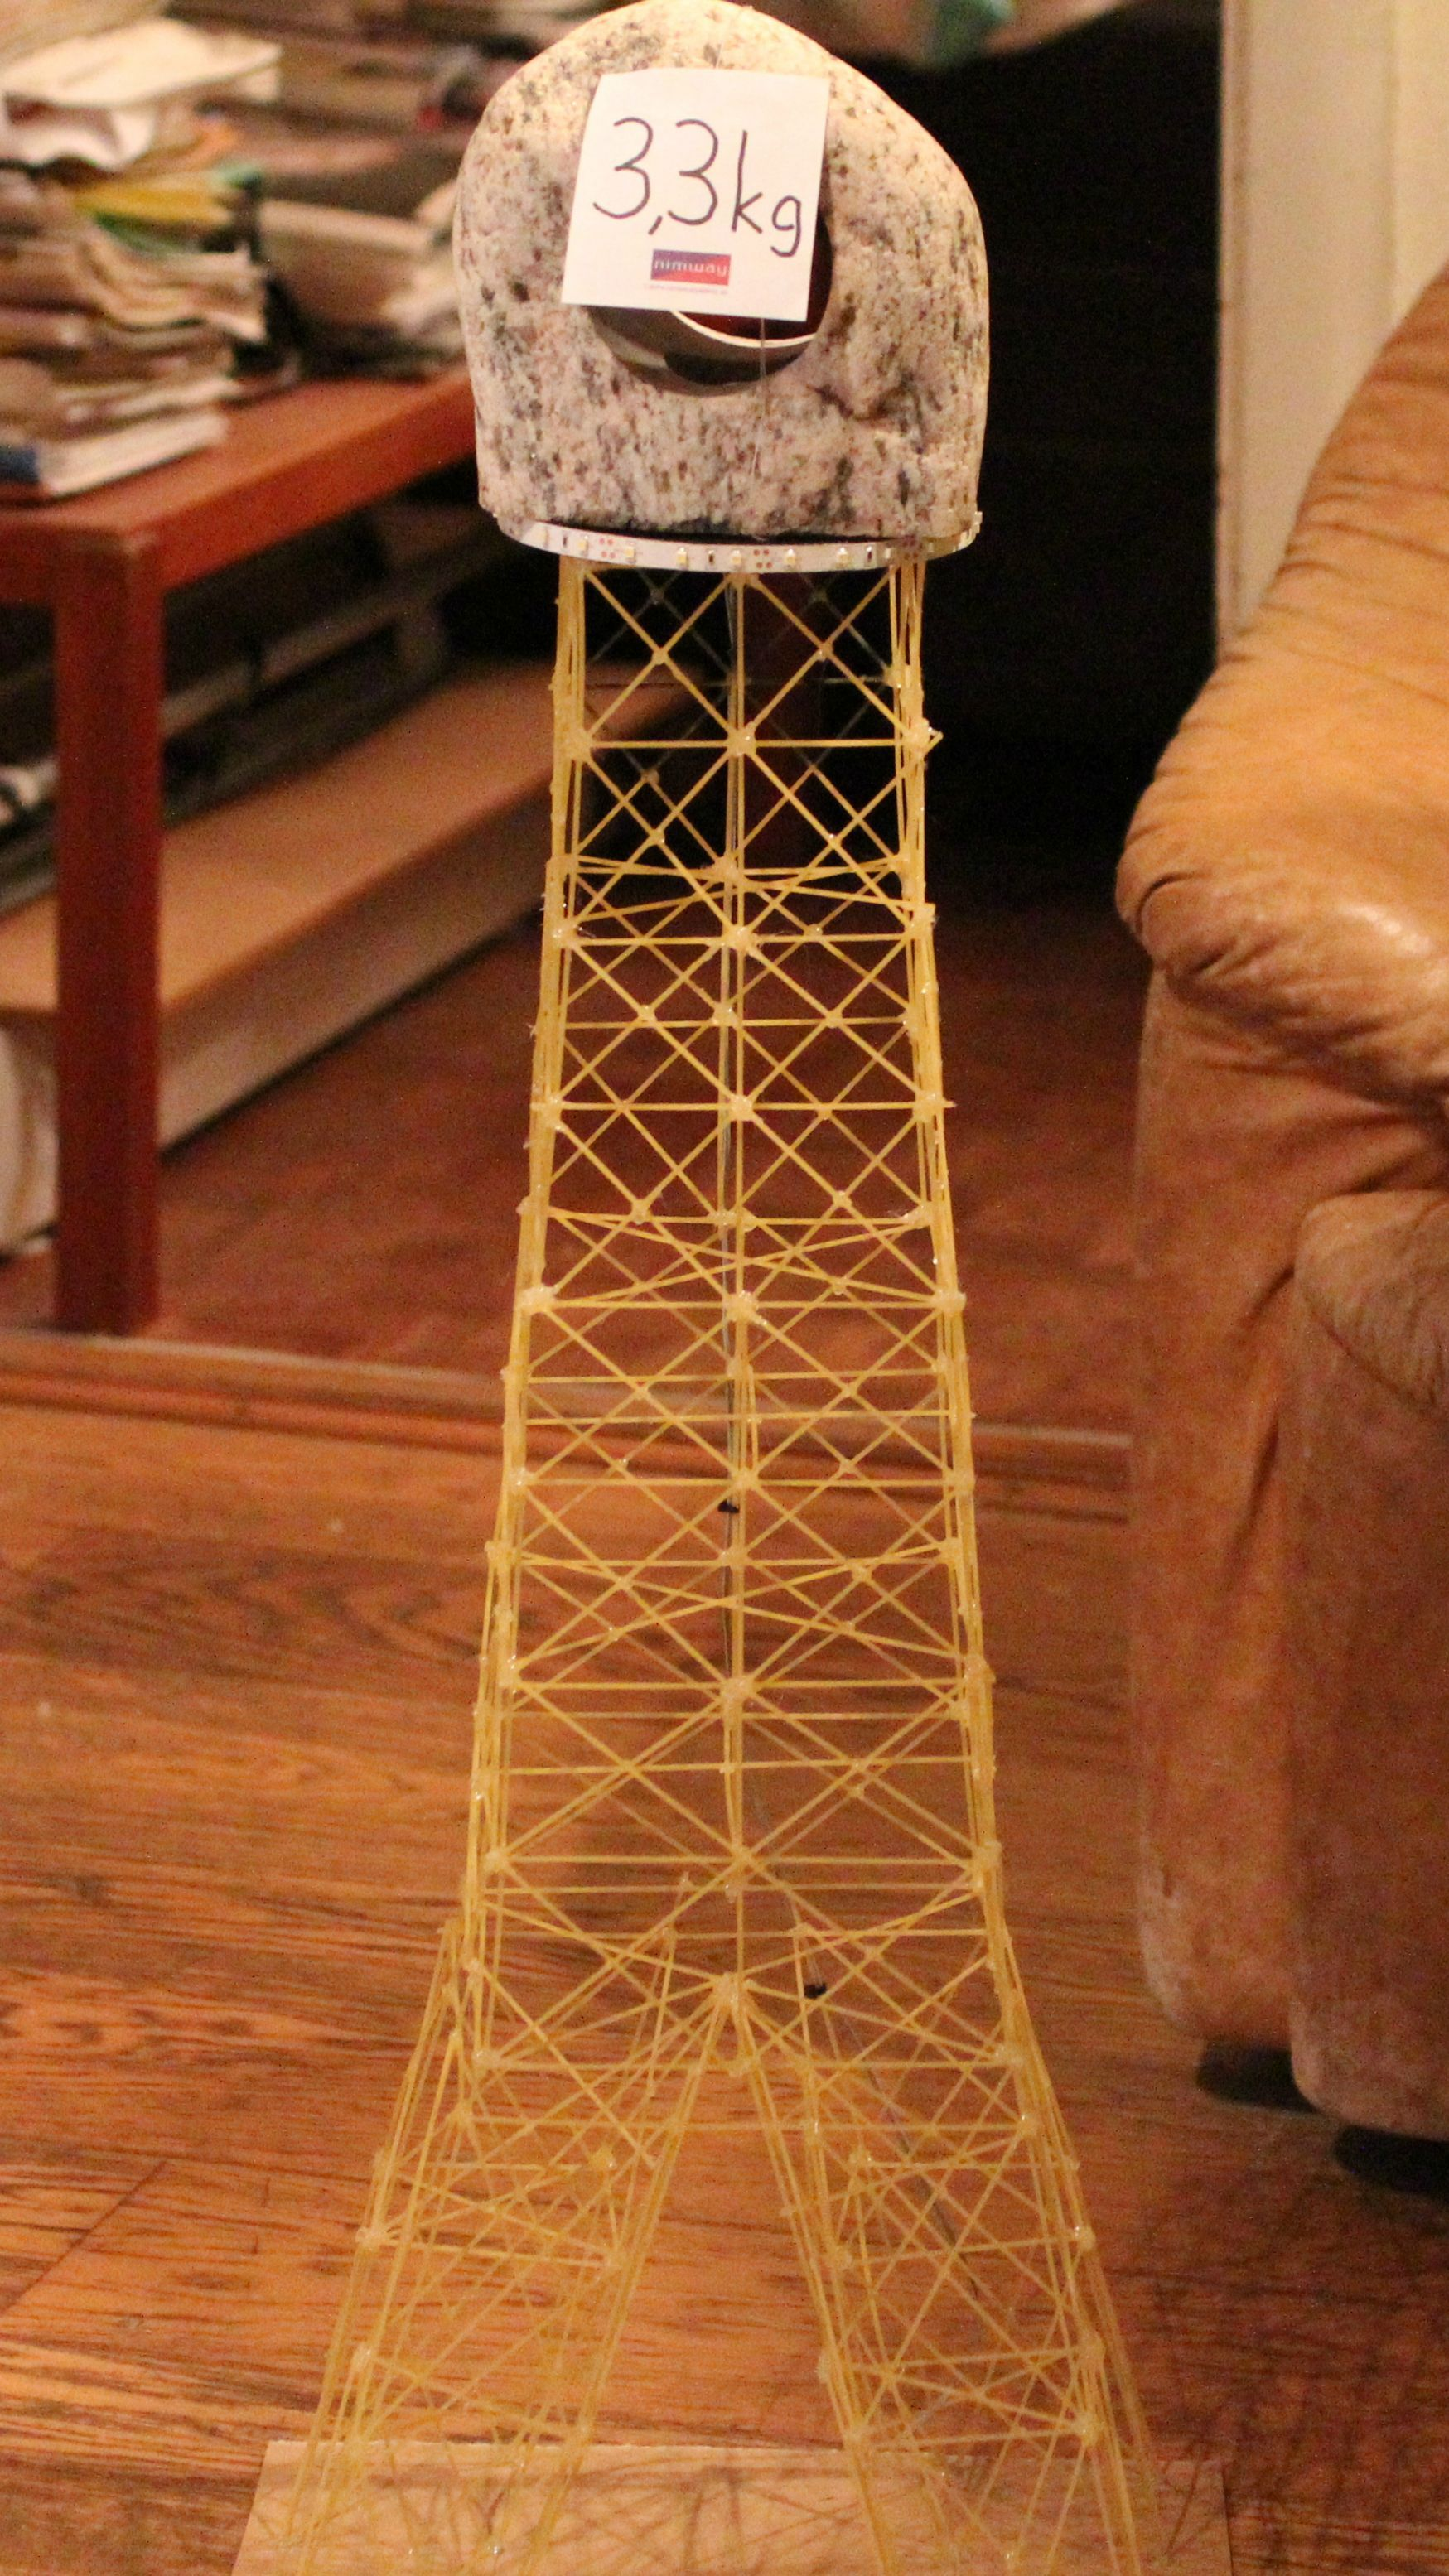 Structural Integrity Of A Spaghetti Eiffel Tower Tower